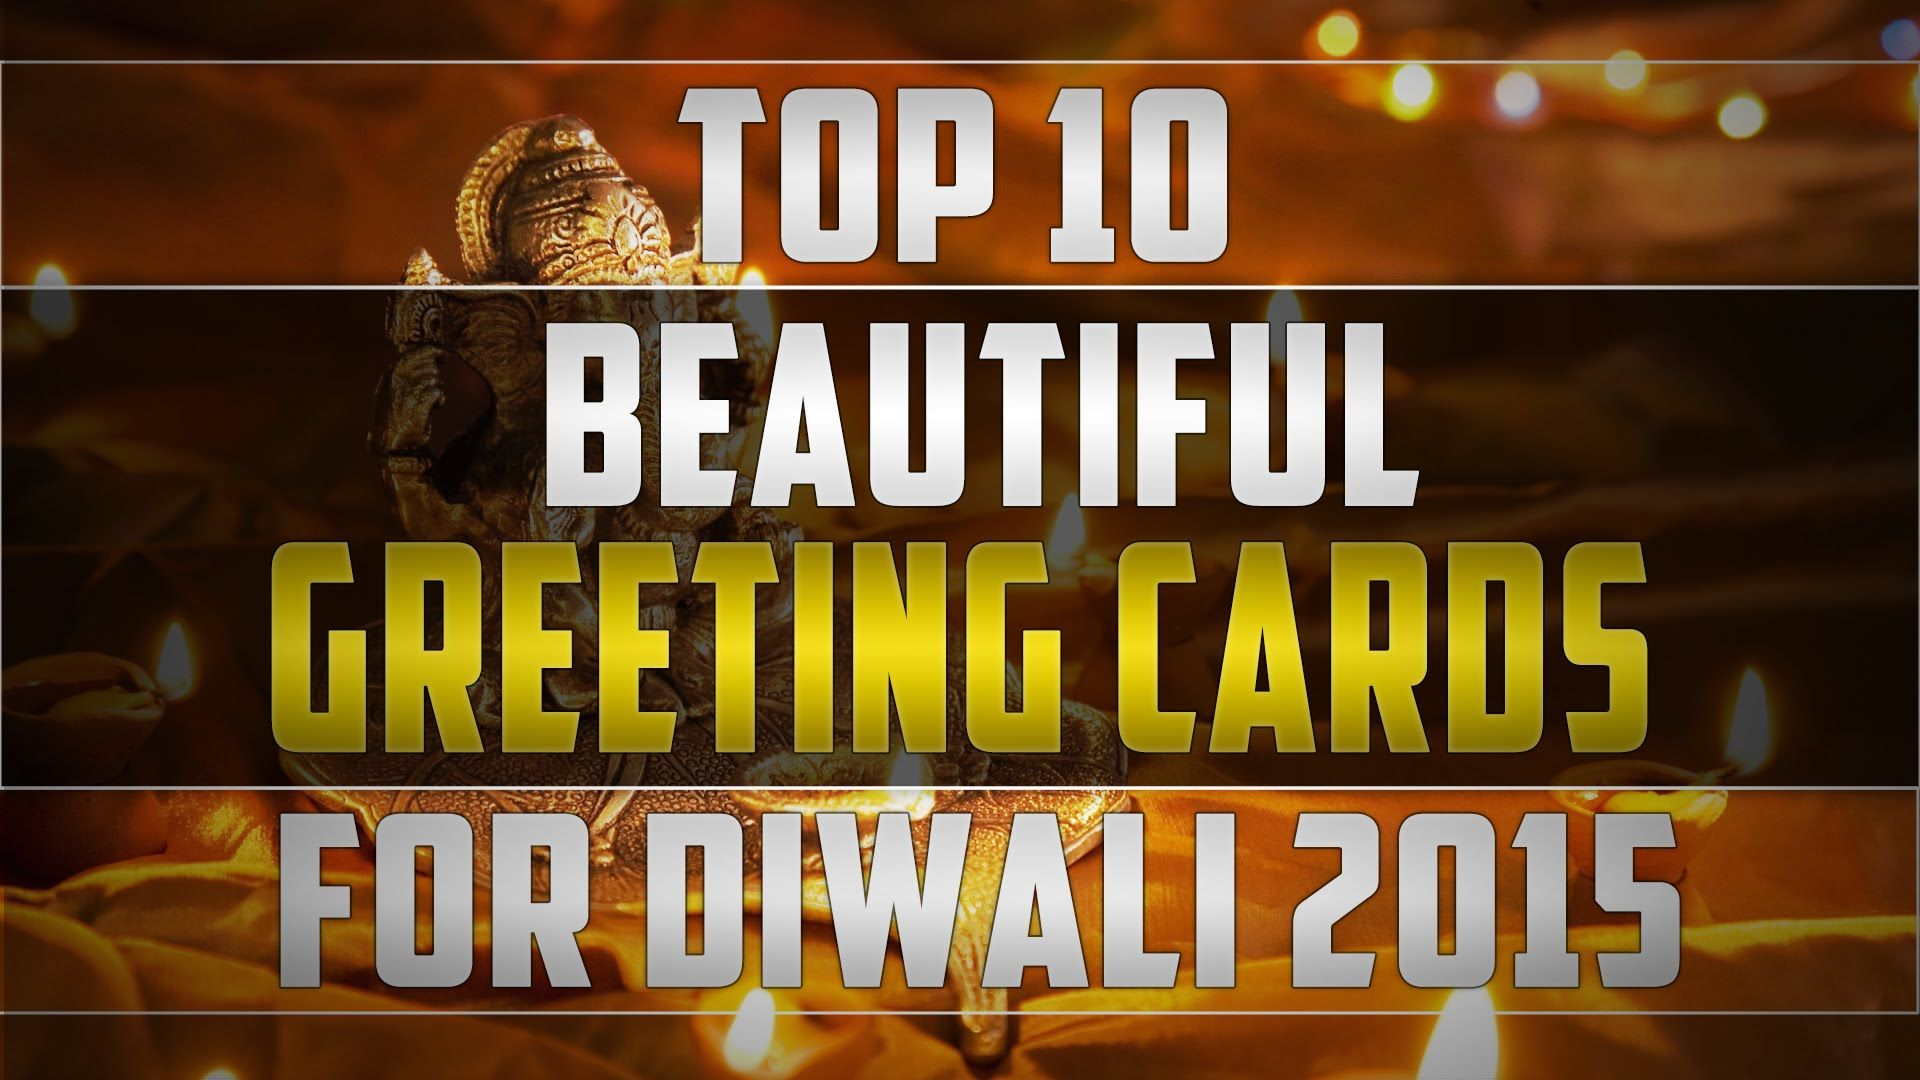 Top 10 beautiful greeting cards for diwali 2015 the trendz journal top 10 beautiful greeting cards for diwali 2015 m4hsunfo